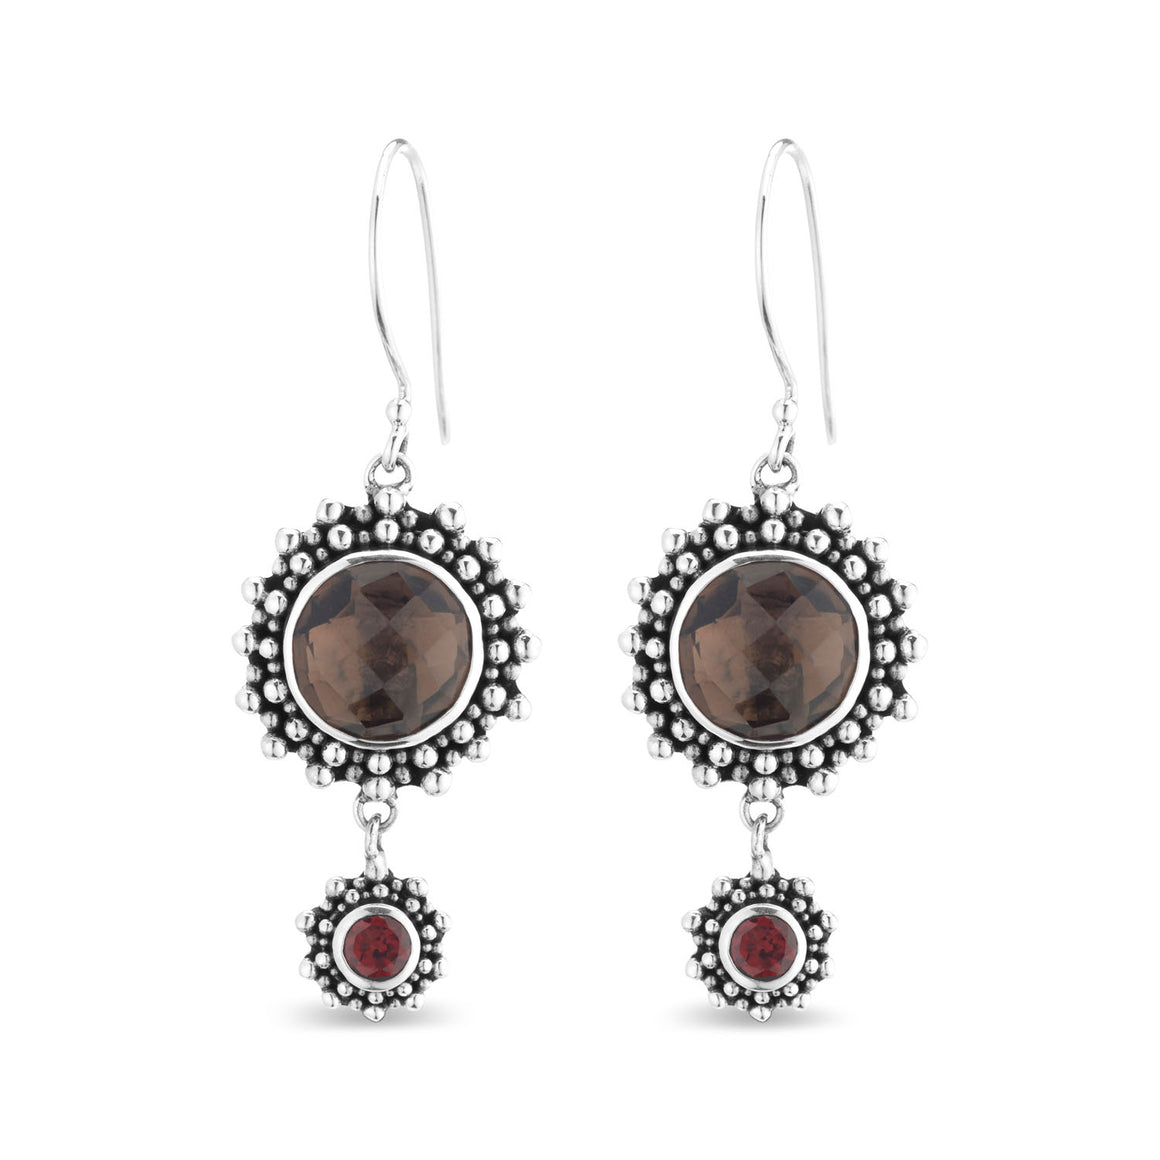 Allspice Earrings by Lori Bonn (113403SQ)